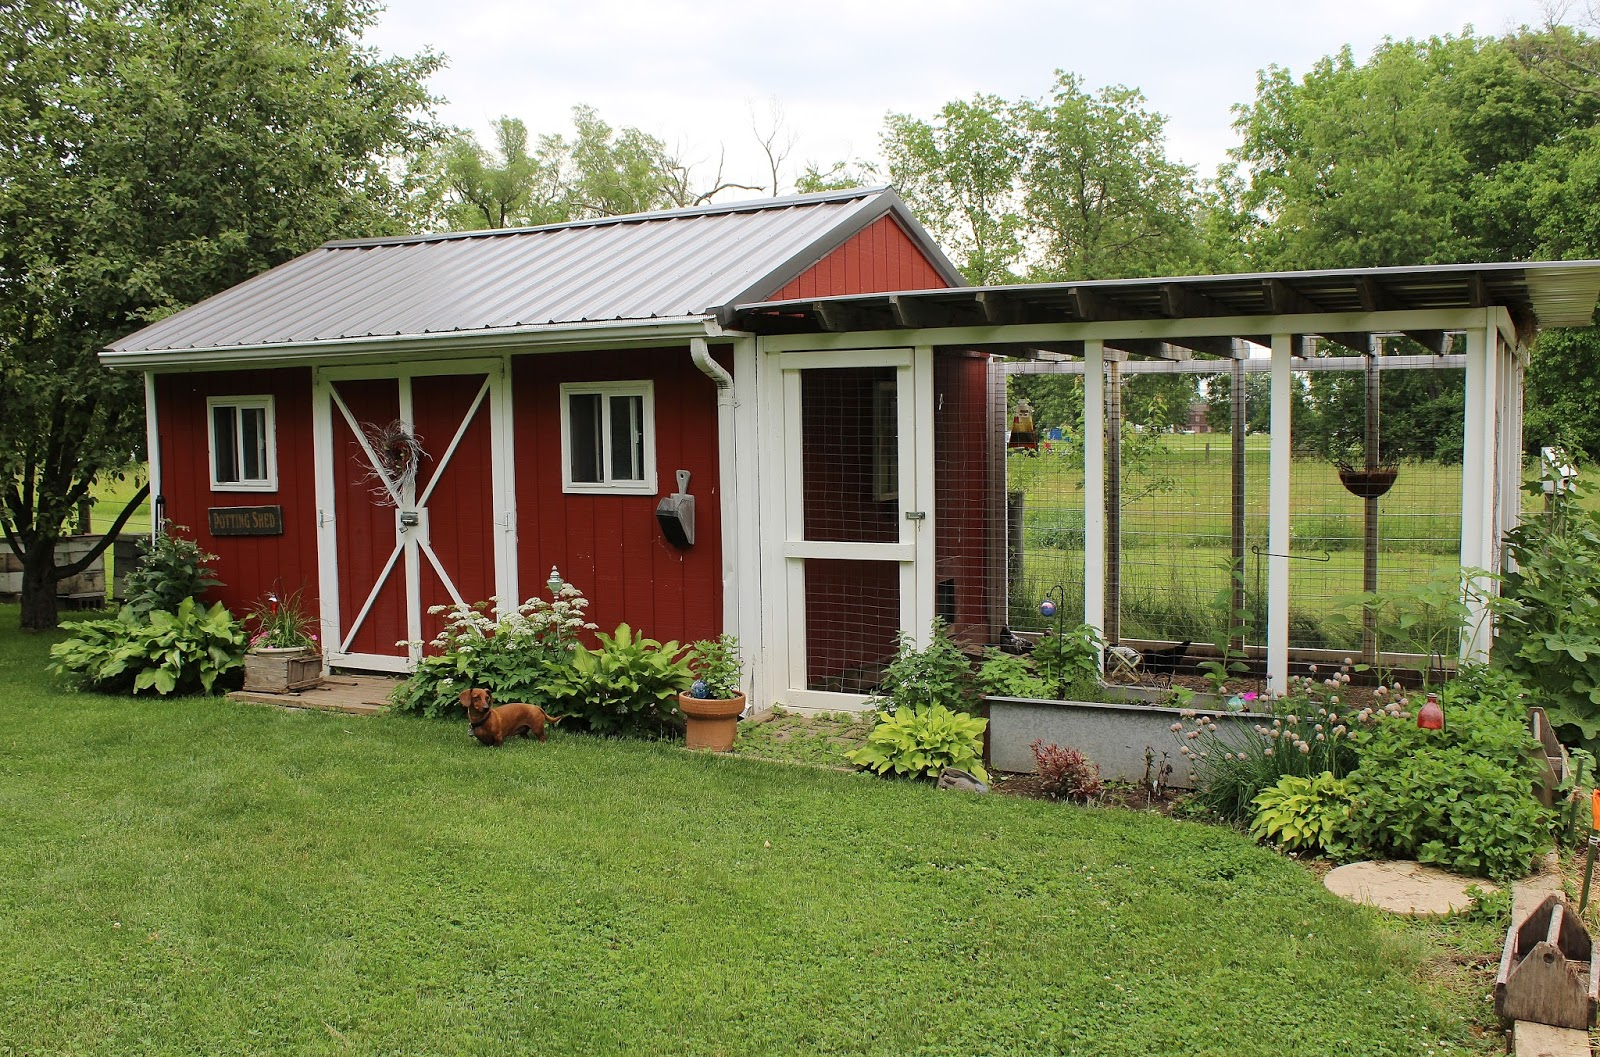 Garden Sheds Ohio ohio thoughts~: moving a shed